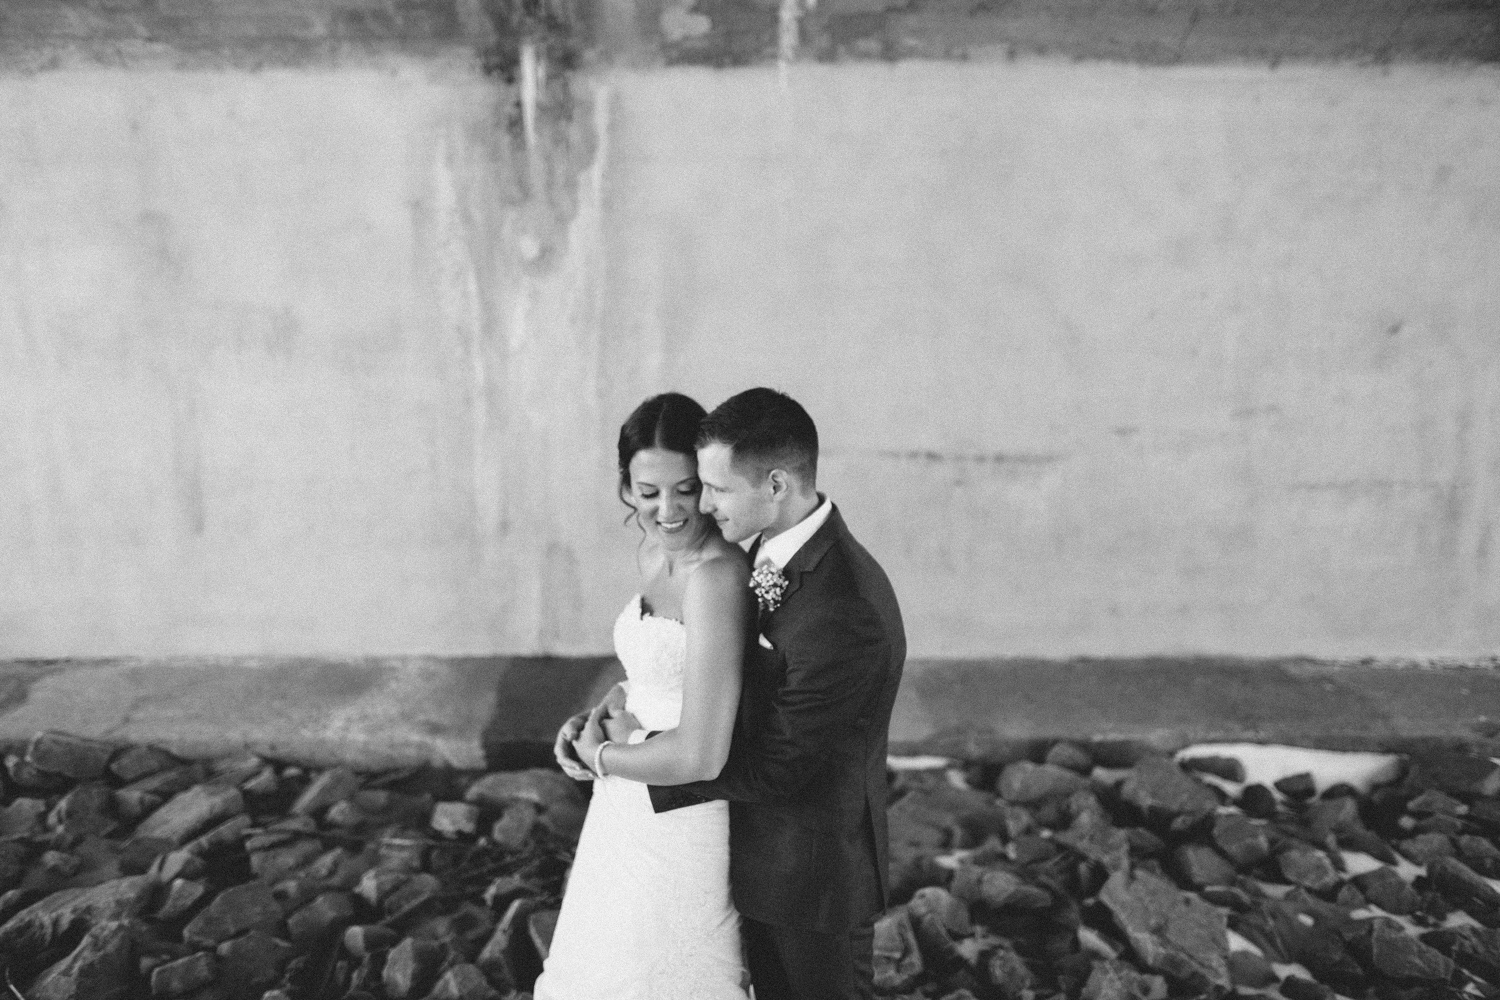 israel&aubrey_siouxfalls_wedding_photographer_48.jpg